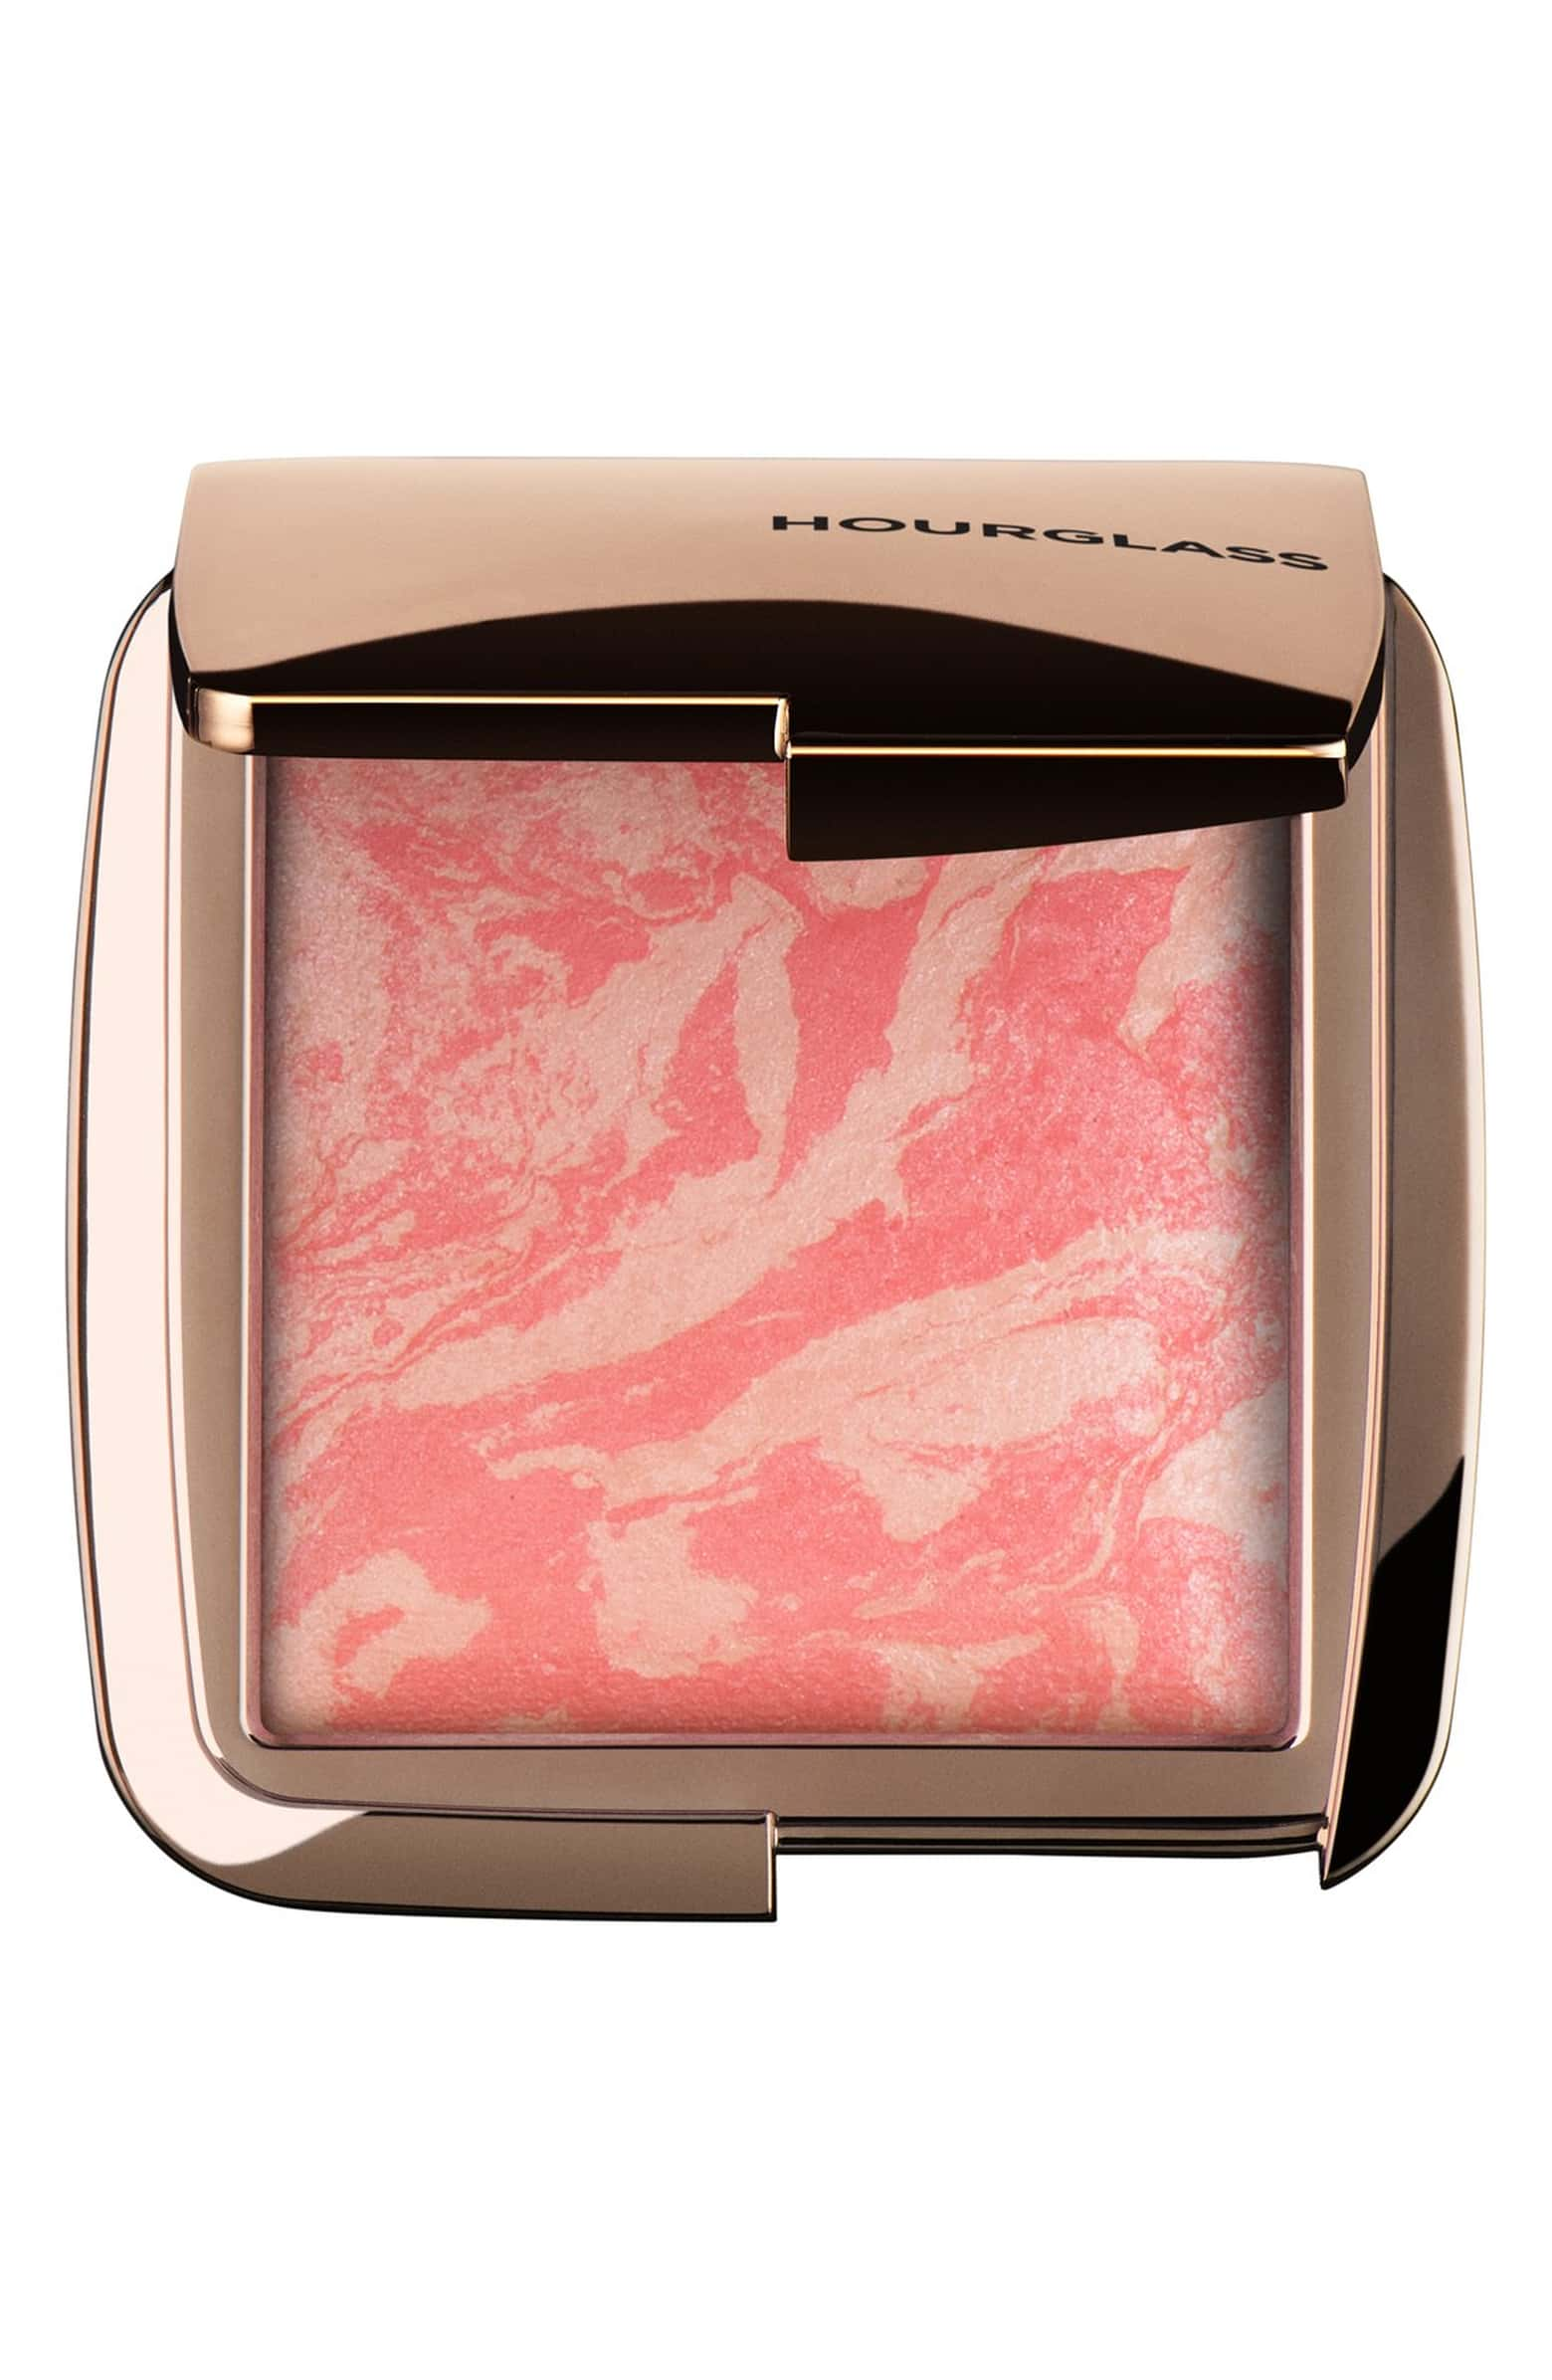 HOURGLASS-Ambient-Lighting-Blush-Incandescent-Electra-sun-kissed-blush